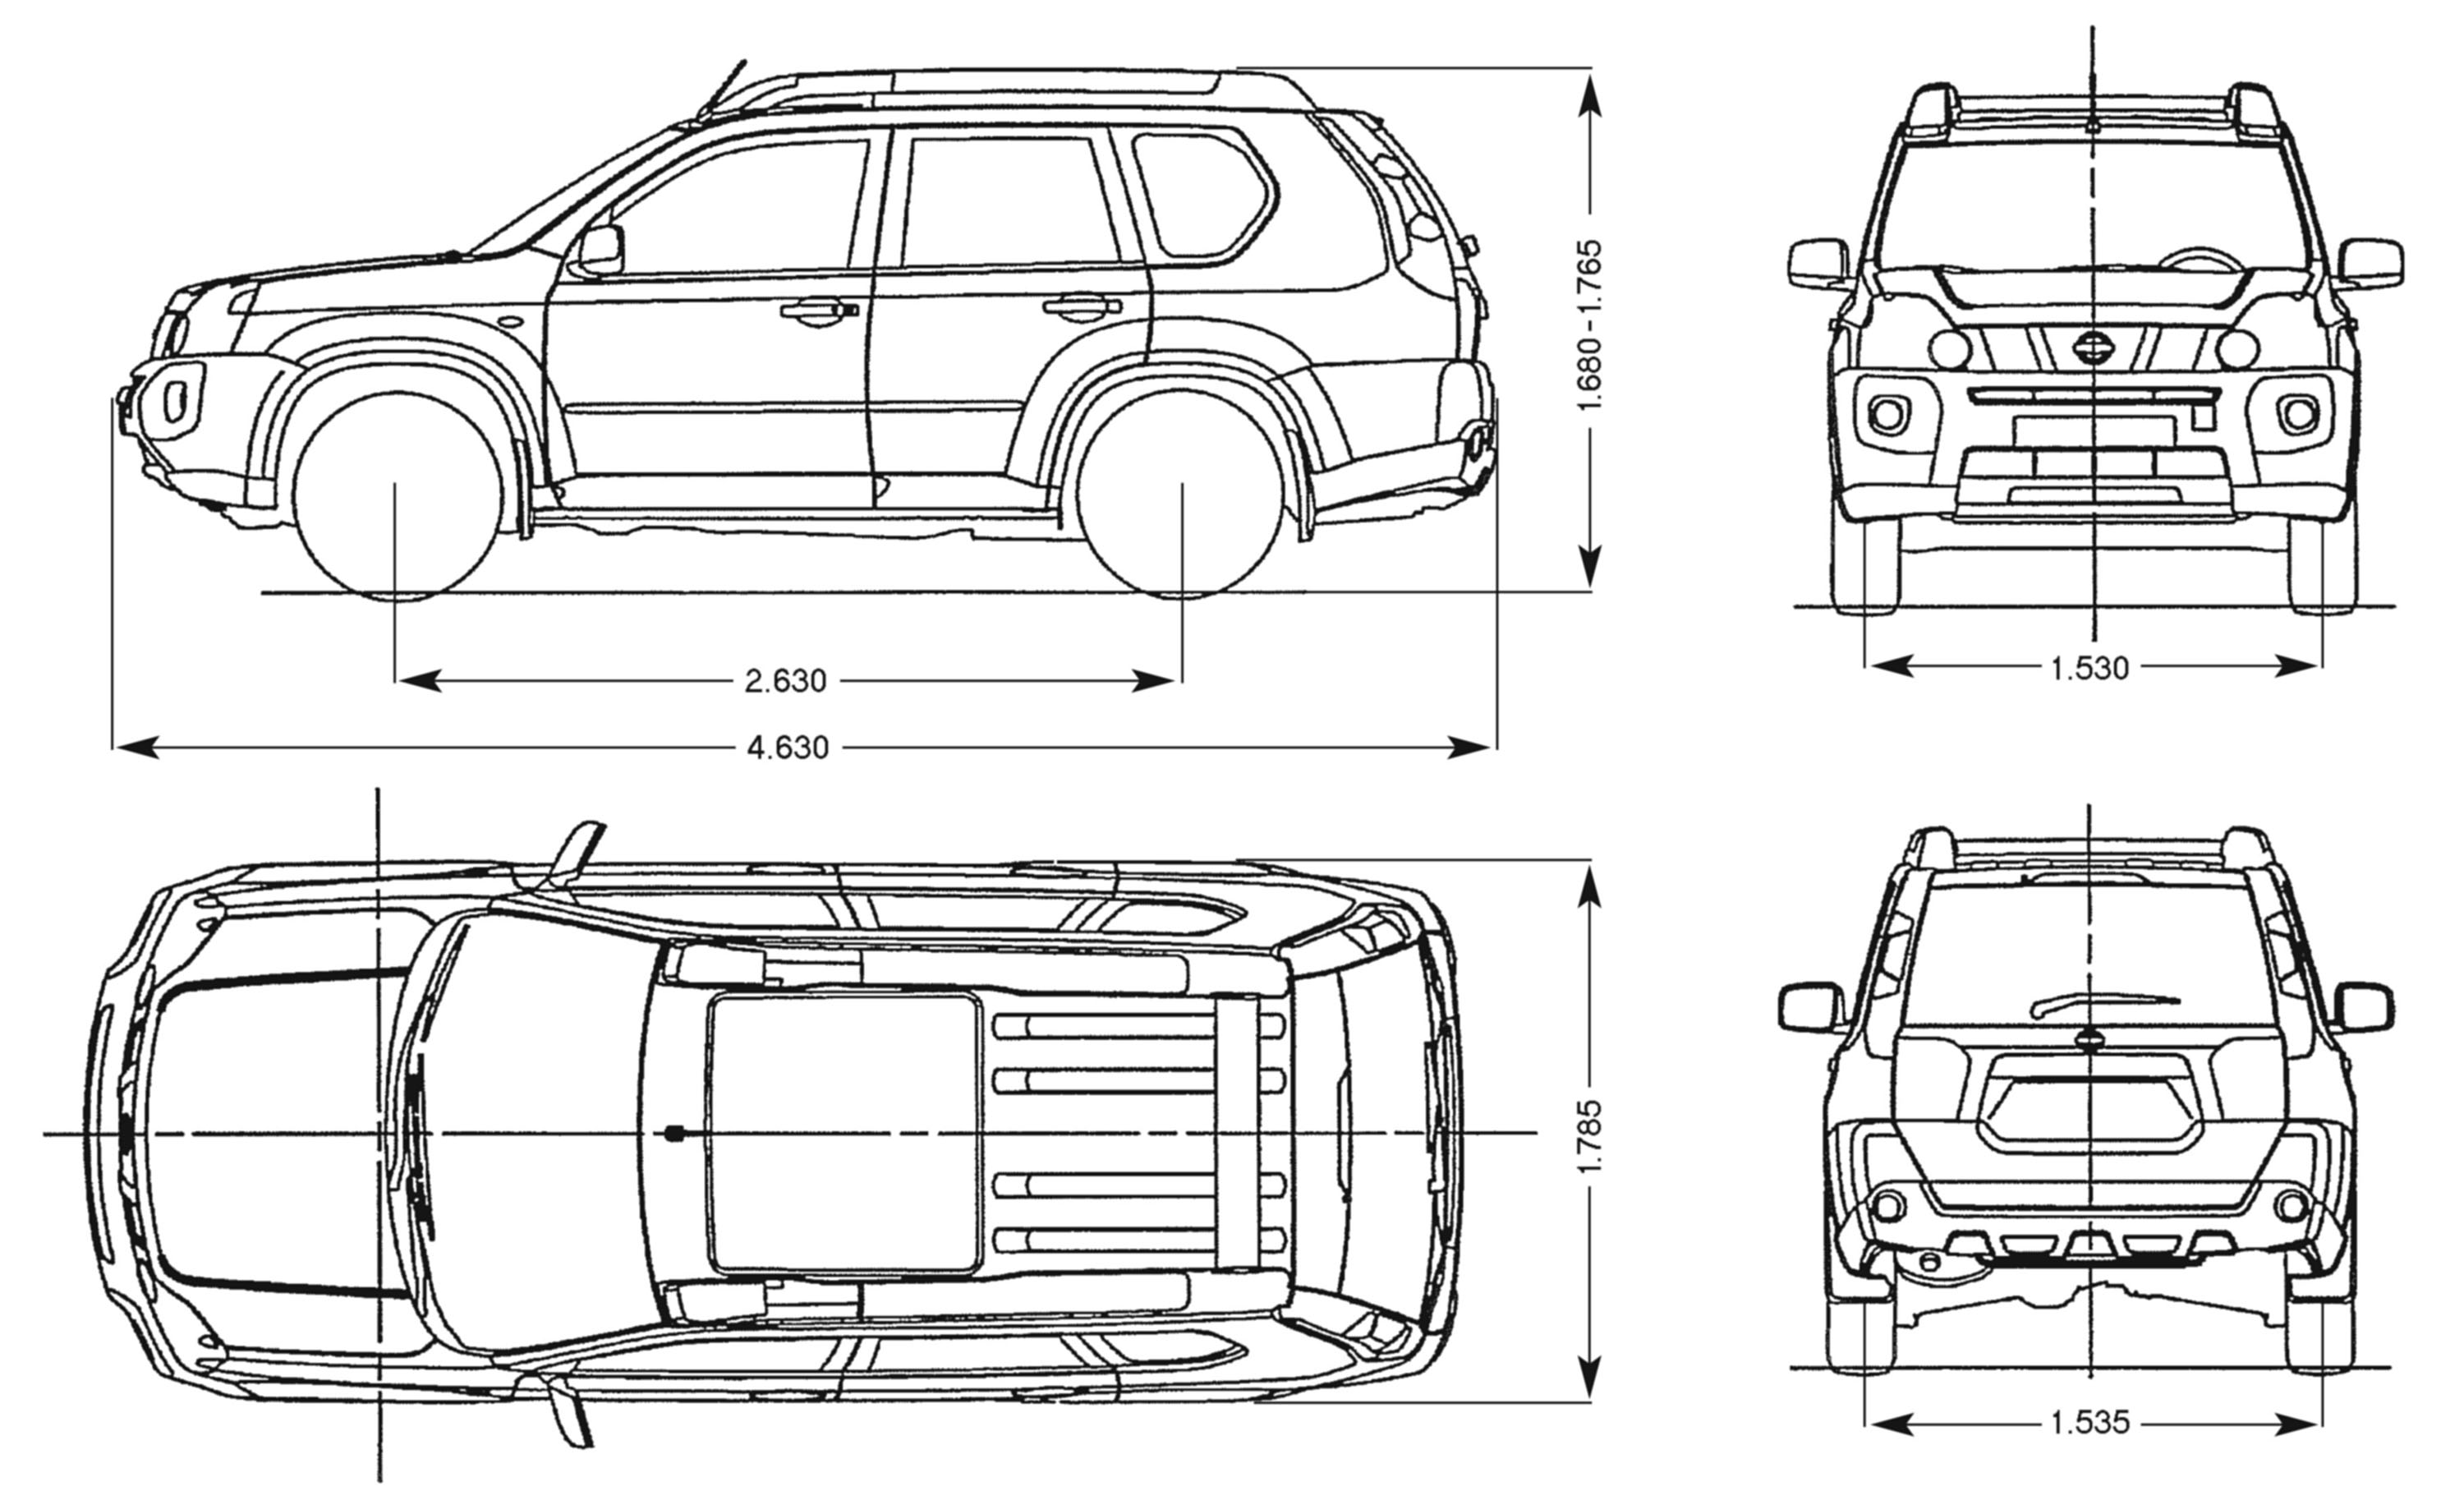 nissan x trail 2007 blueprint download free blueprint. Black Bedroom Furniture Sets. Home Design Ideas